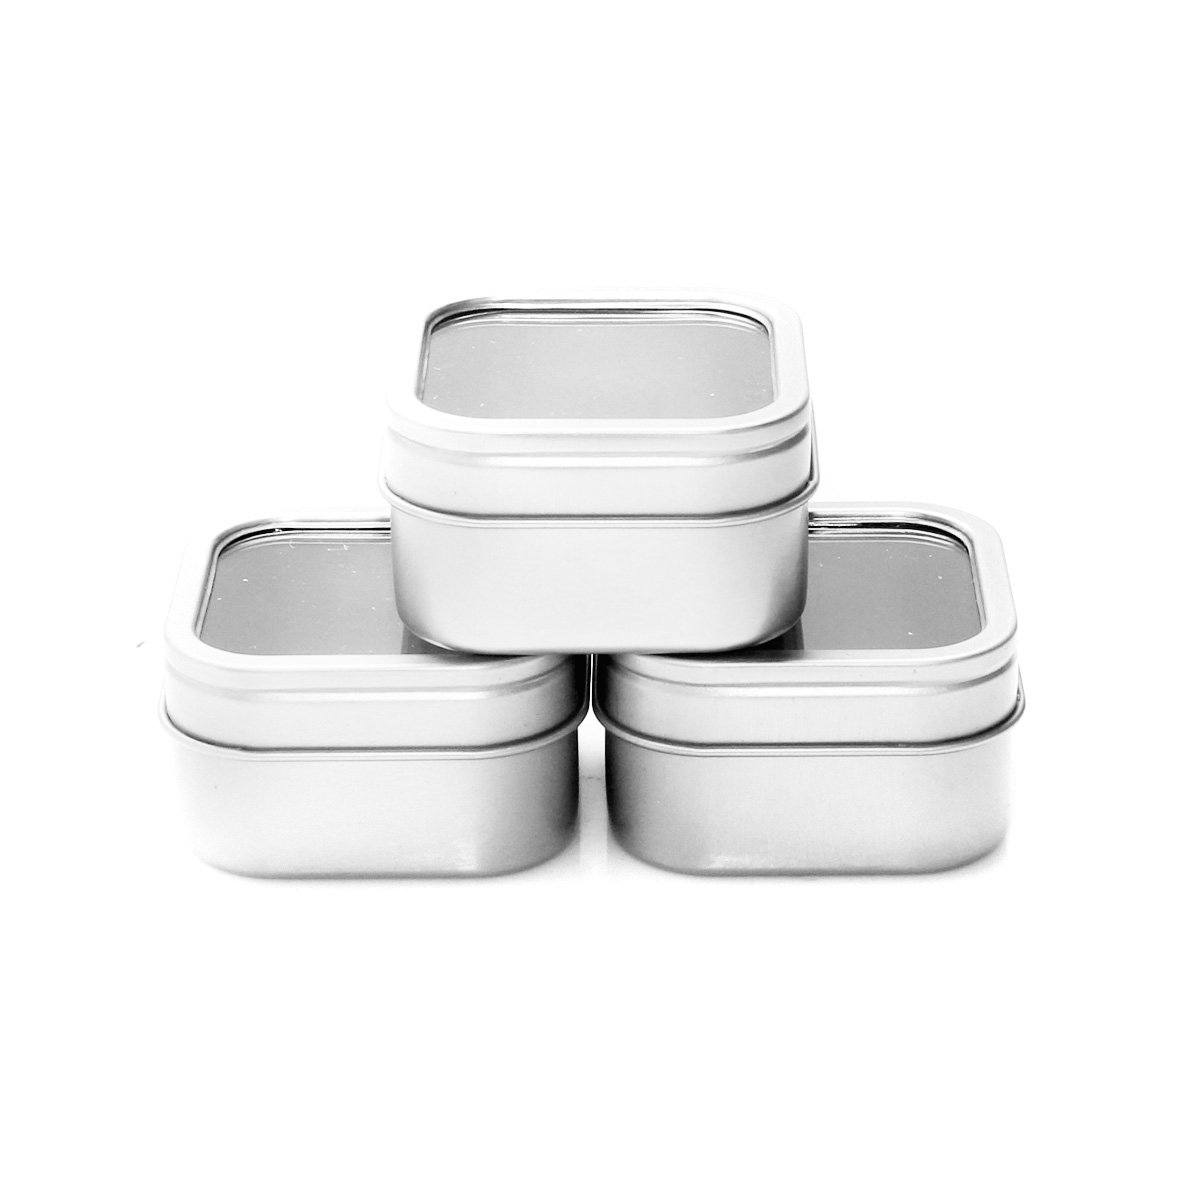 Mimi Pack 4 oz Square Tin Cans with Clear Window Slip Cover Lid for Favors, Spices, Storage, Candies, Mints, Candles and Crafts 24 Pack (Silver)